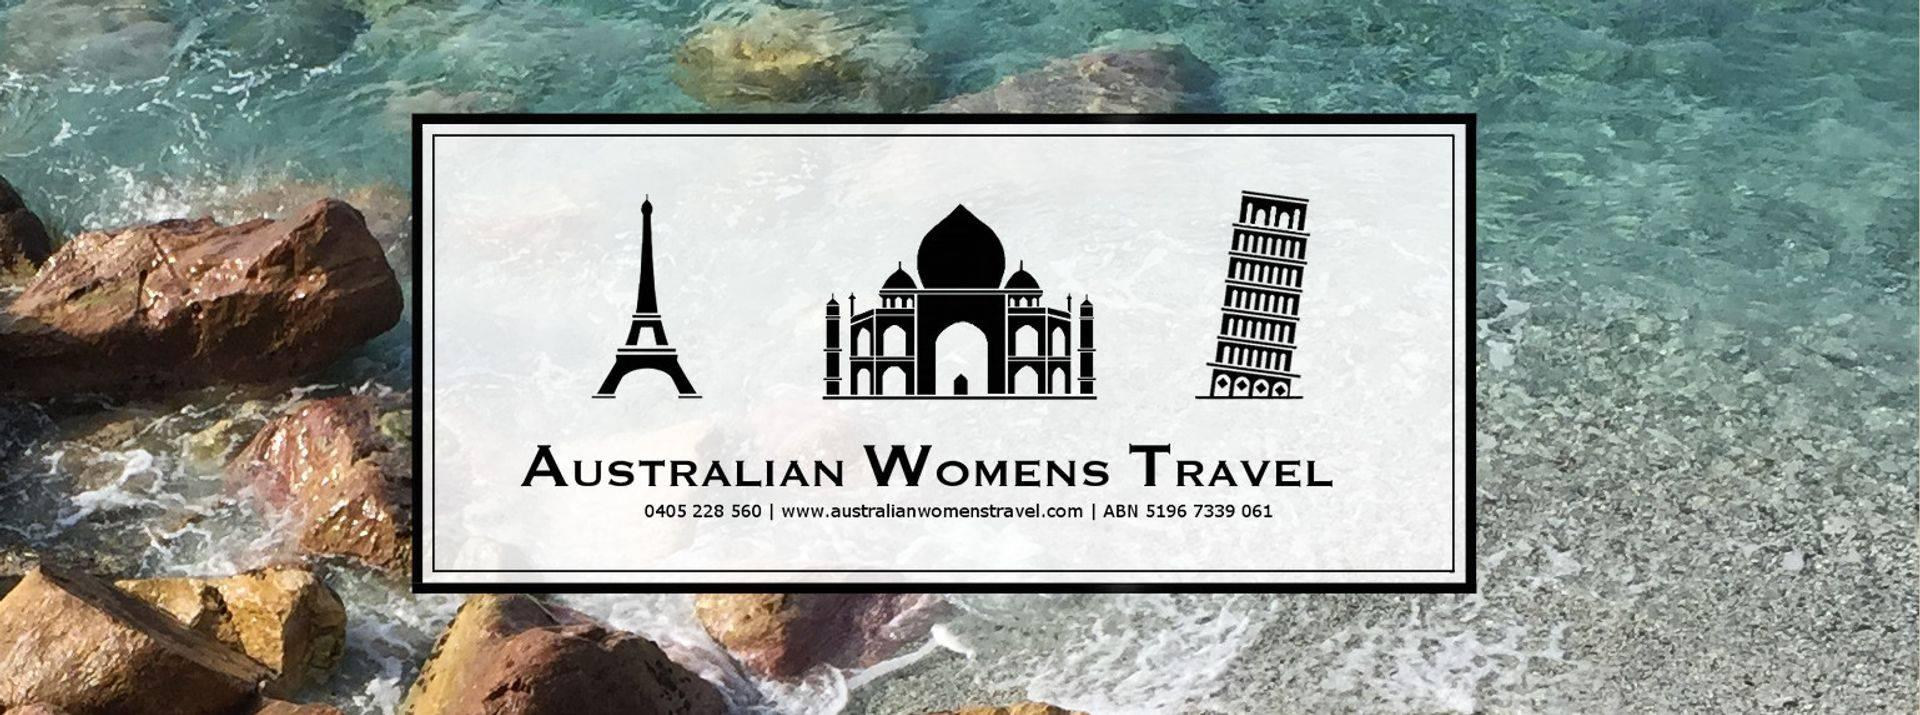 "womens travel.jpg alt= womens travel, italy 'ciao bella tour' "">"